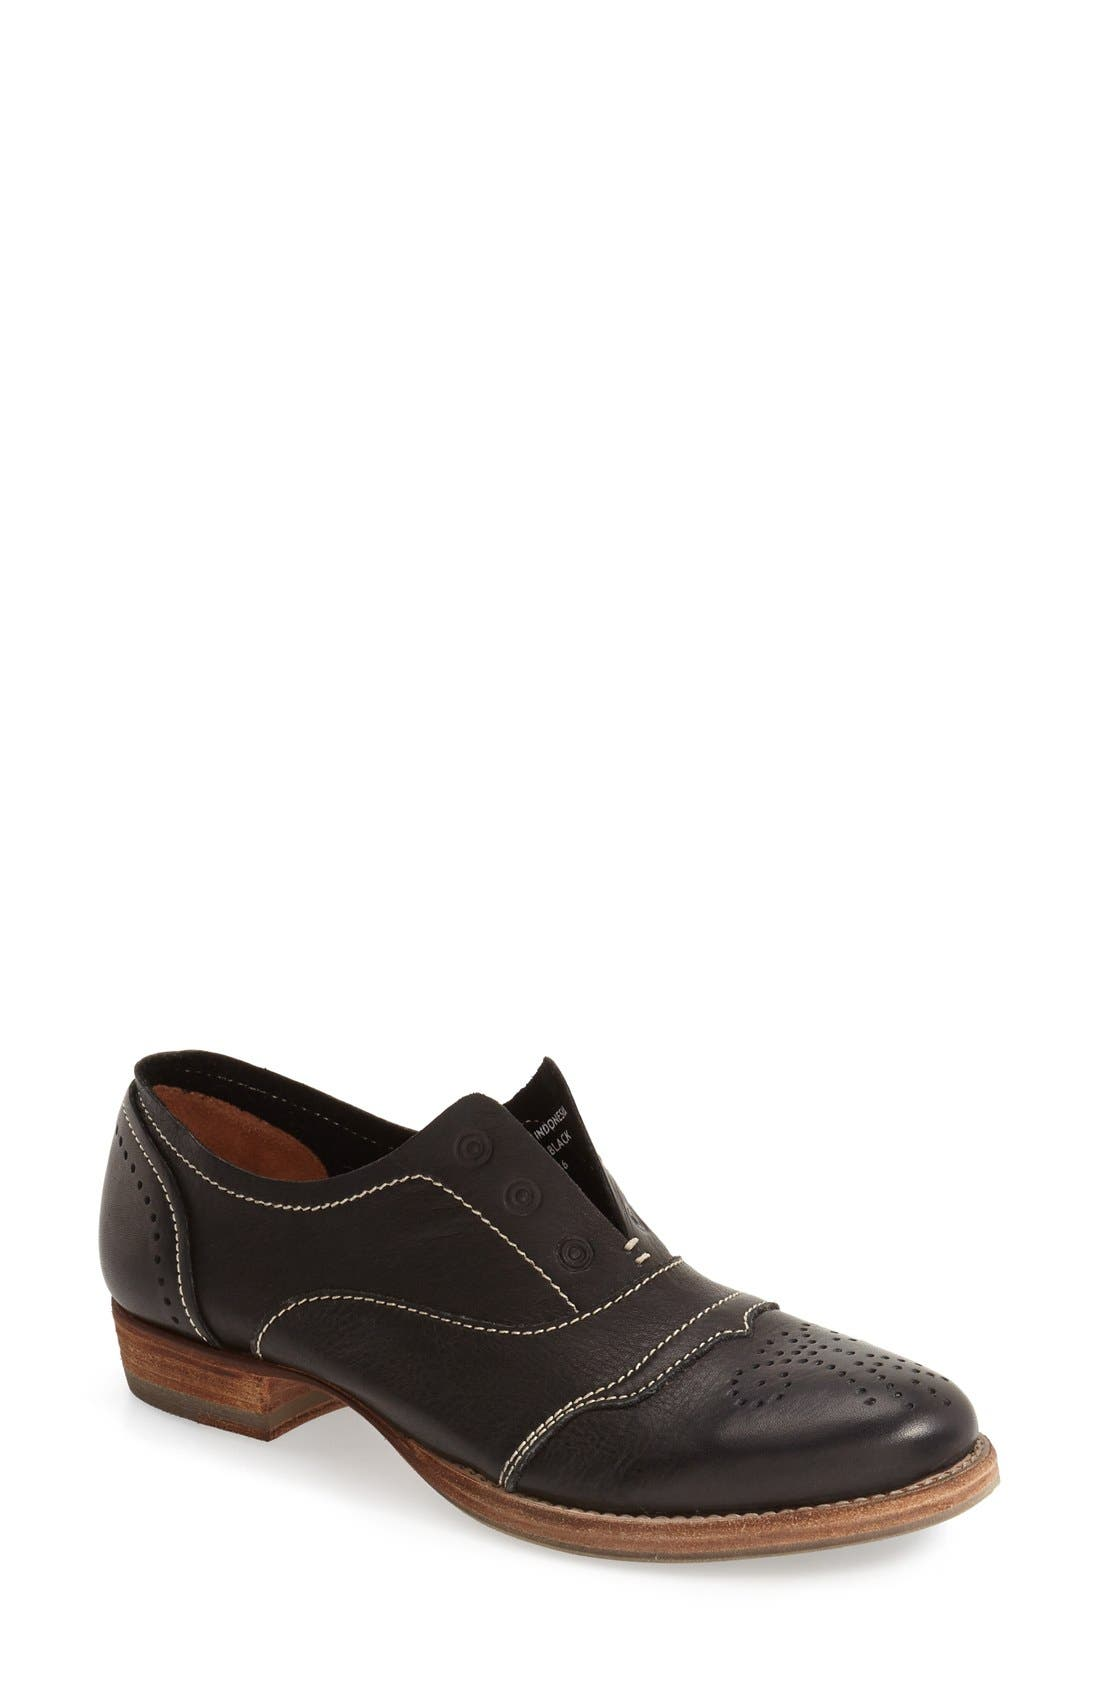 'HL55' Slip-On Oxford,                         Main,                         color, BLACK LEATHER